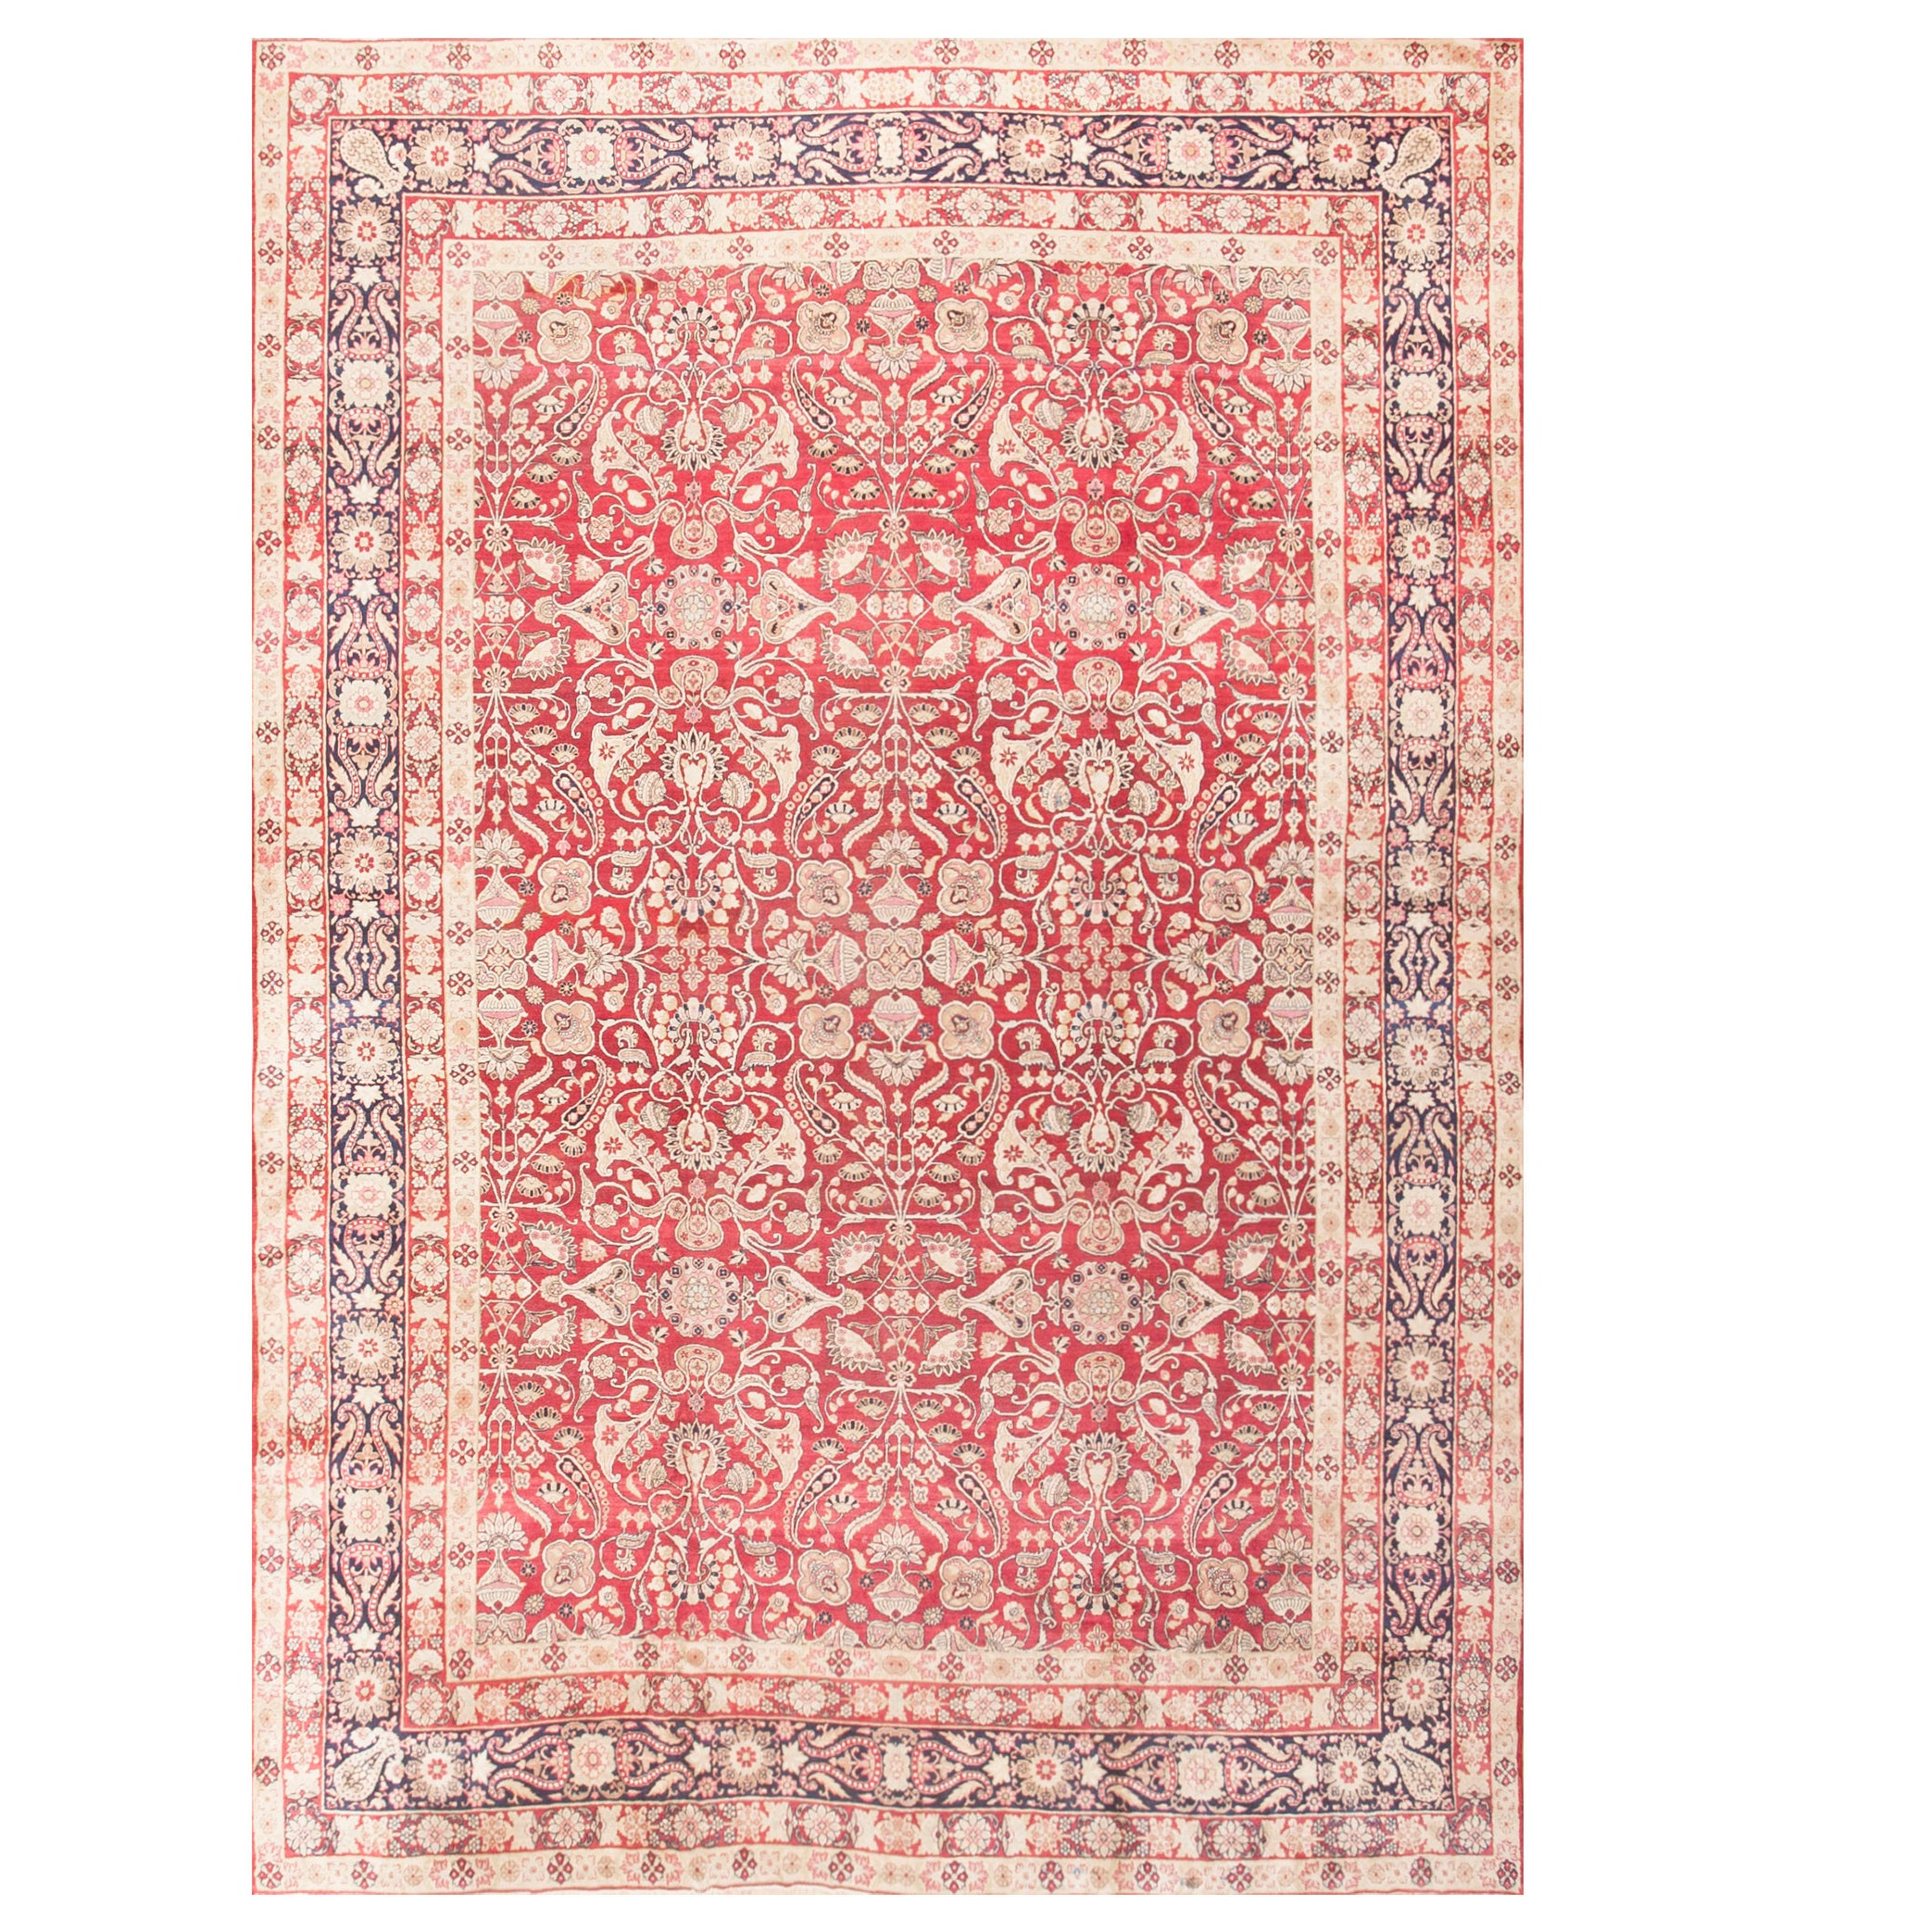 Long Kerman Rug With Intricate Floral Design In Ivory, Red,